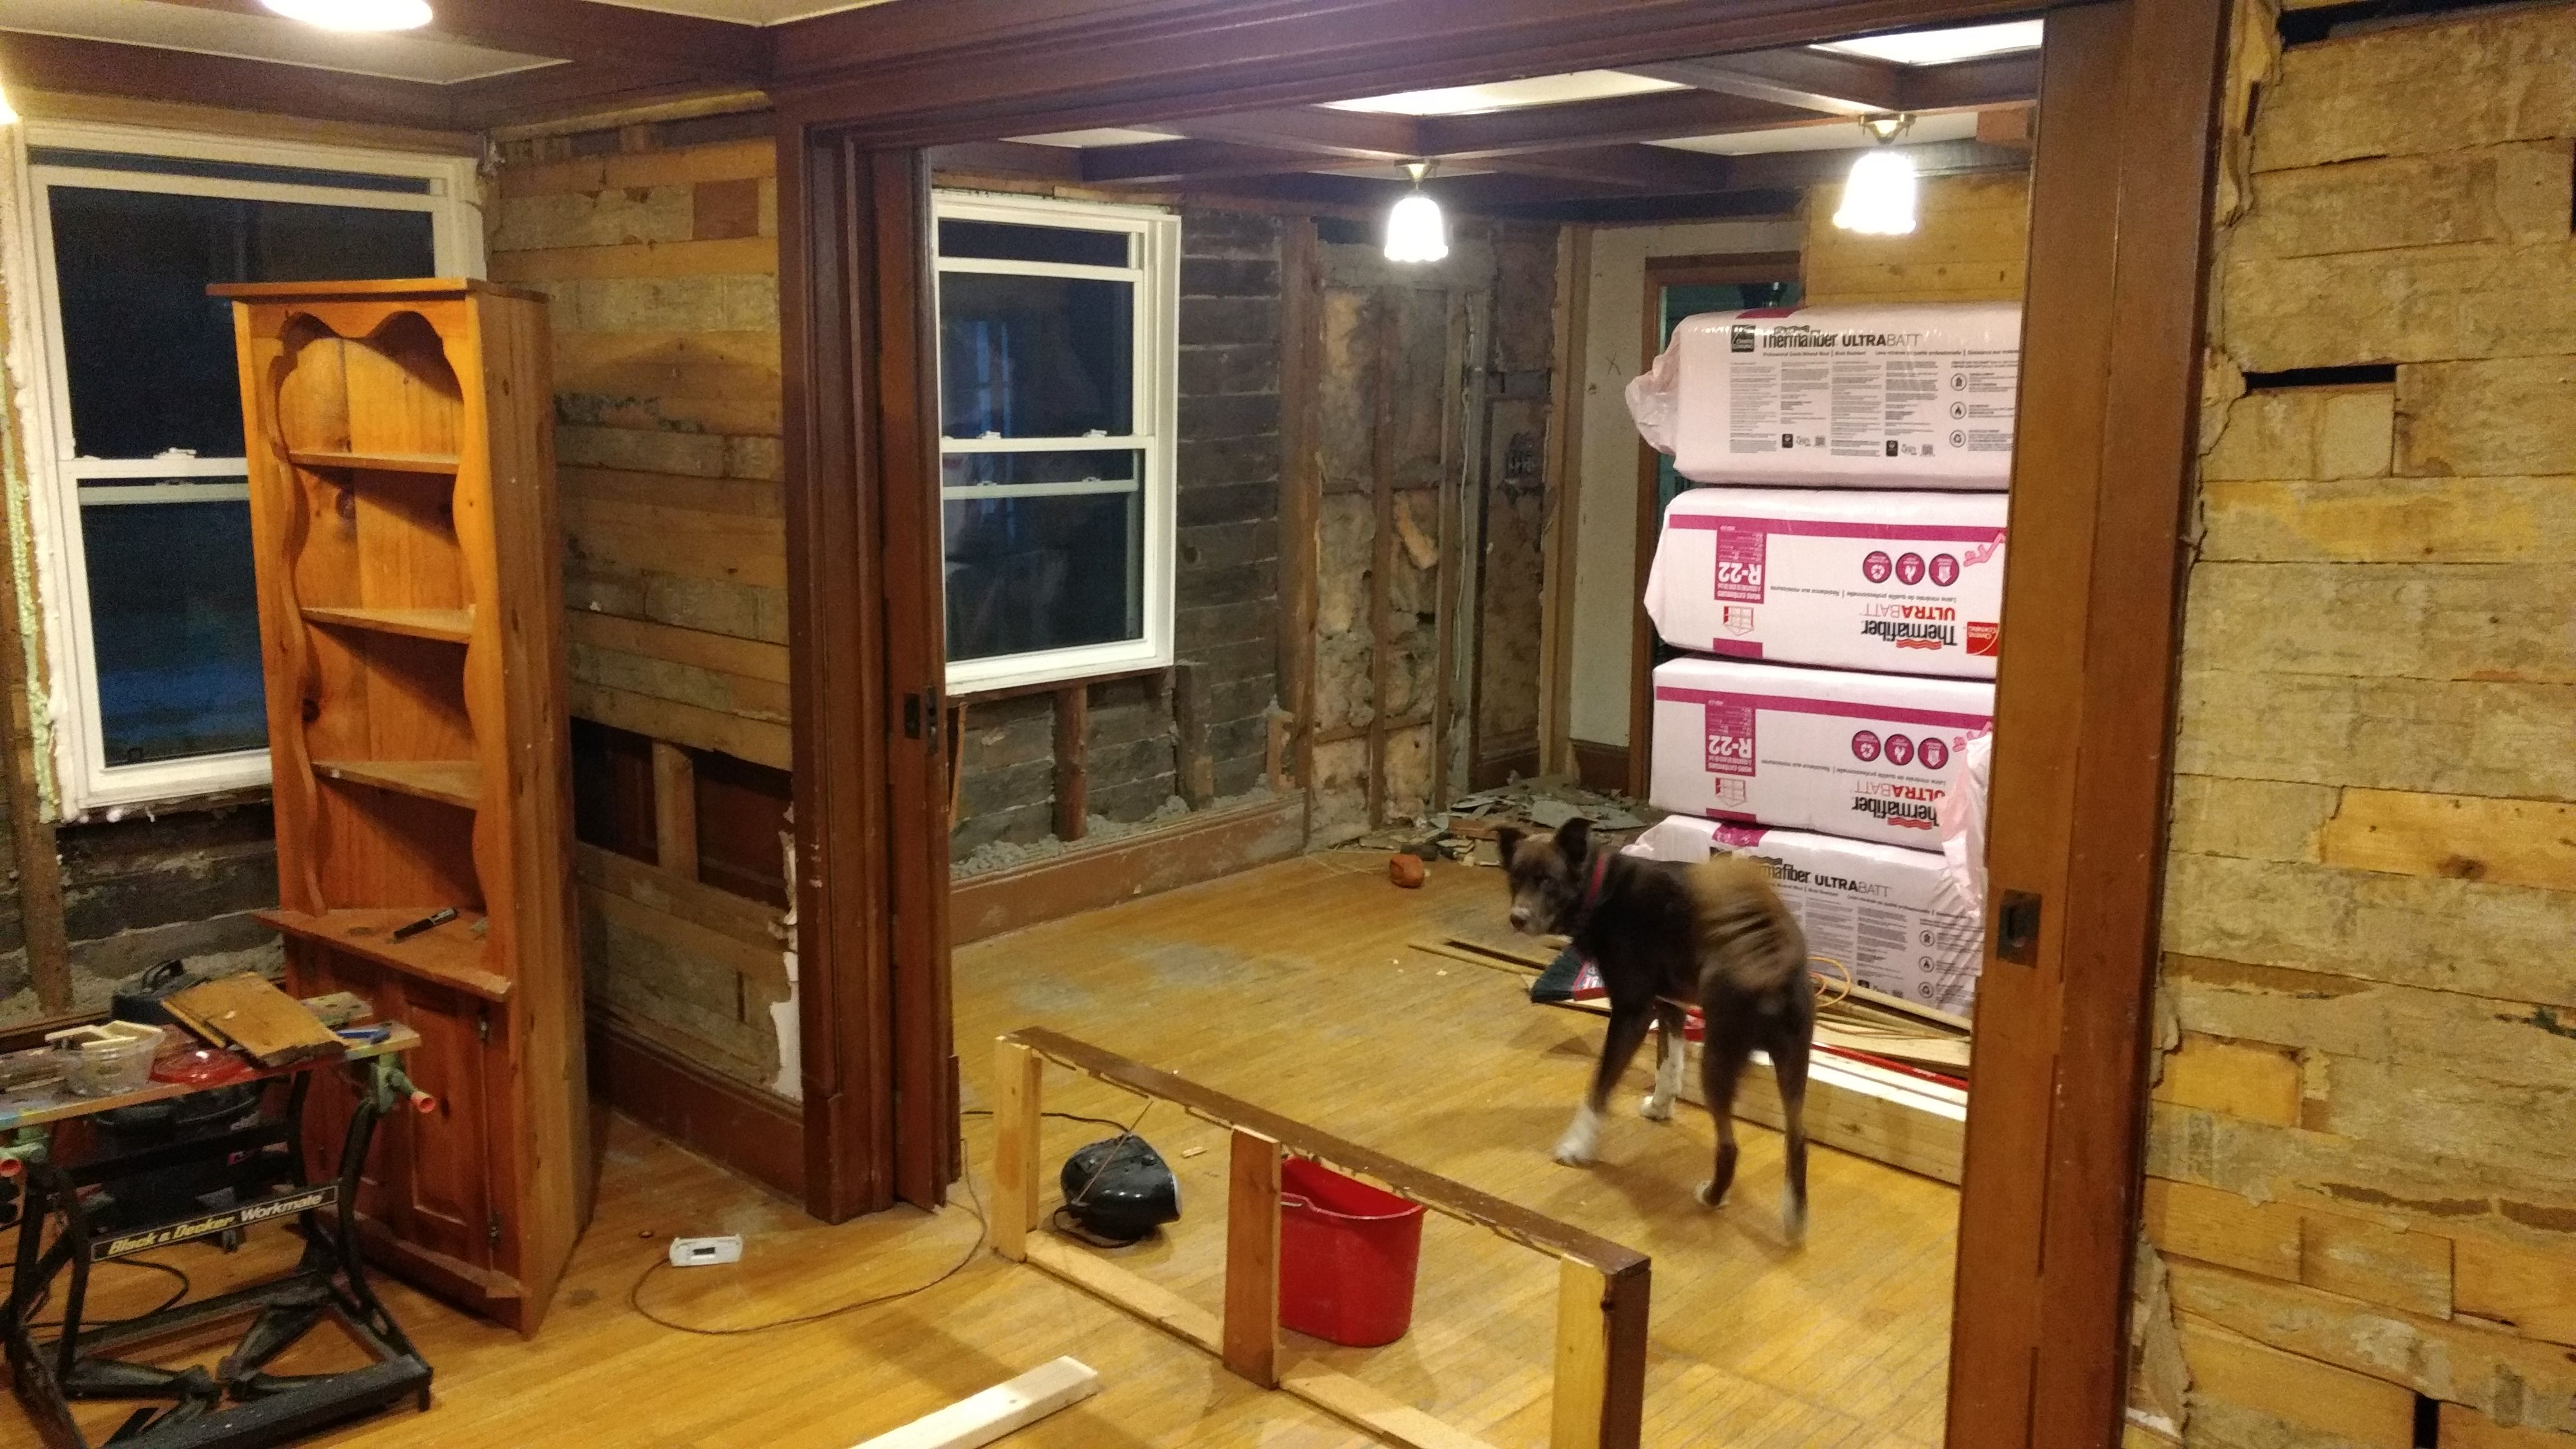 A Few Progress Pics From My First Renovation #handmade #crafts #HowTo #DIY